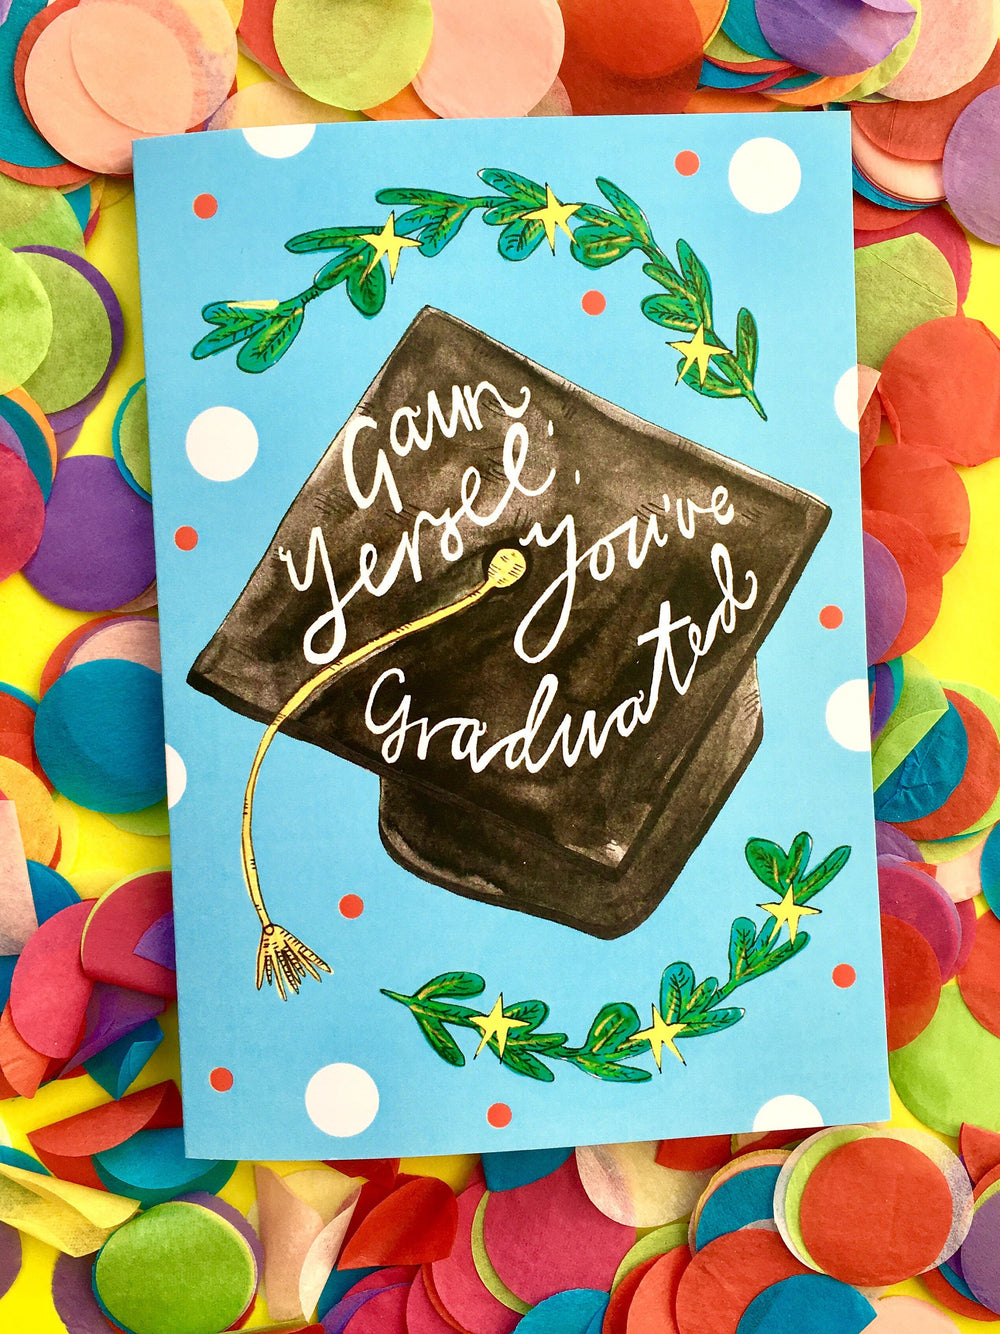 GAUN YERSEL' You've GRADUATED Greetings Card